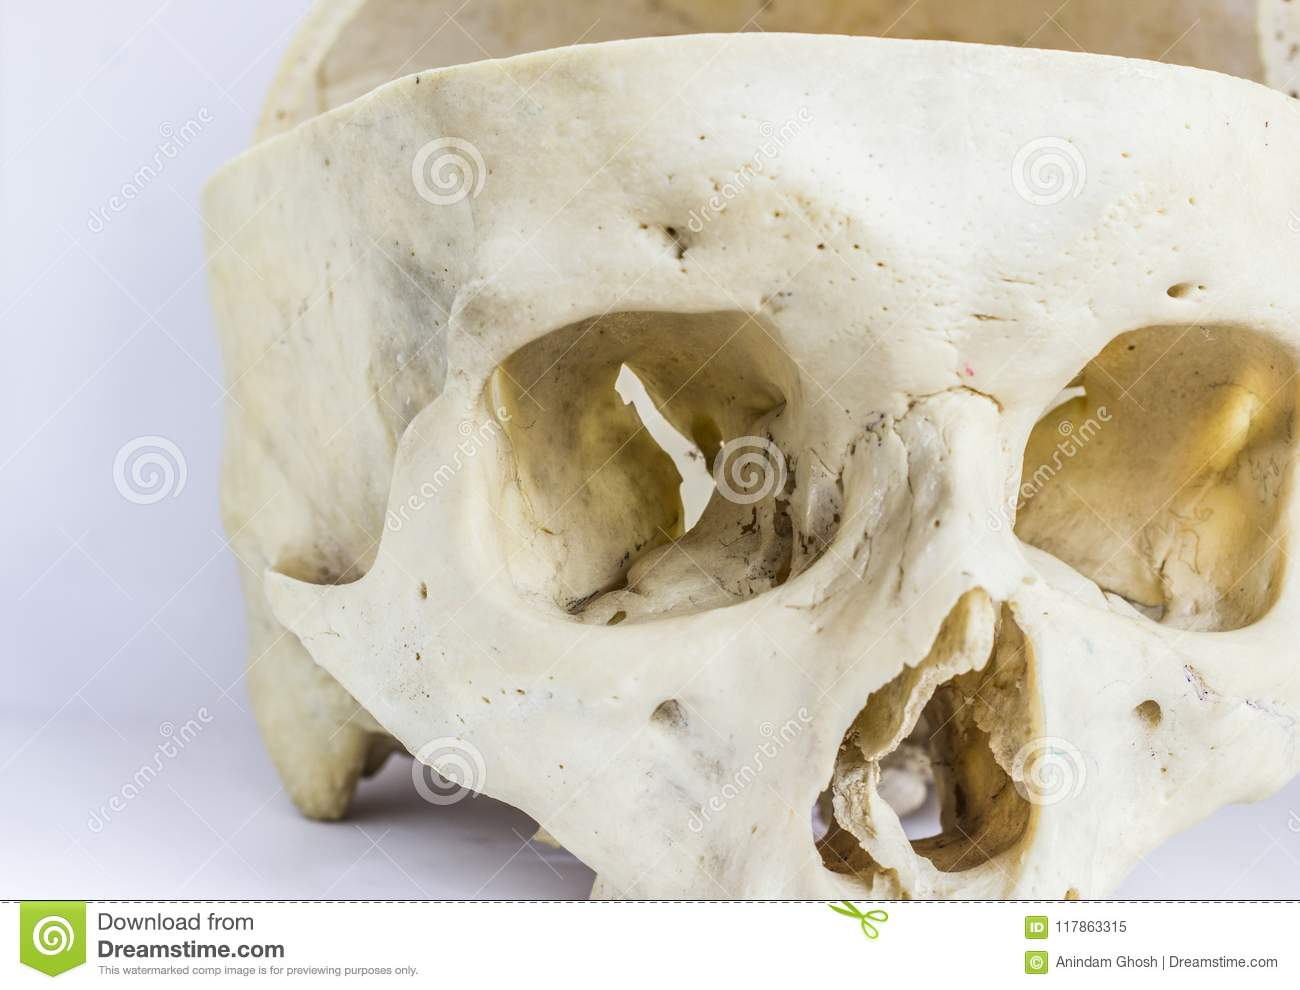 Close Up Macro View Of Human Skull Bone Showing The Anatomy Of ...